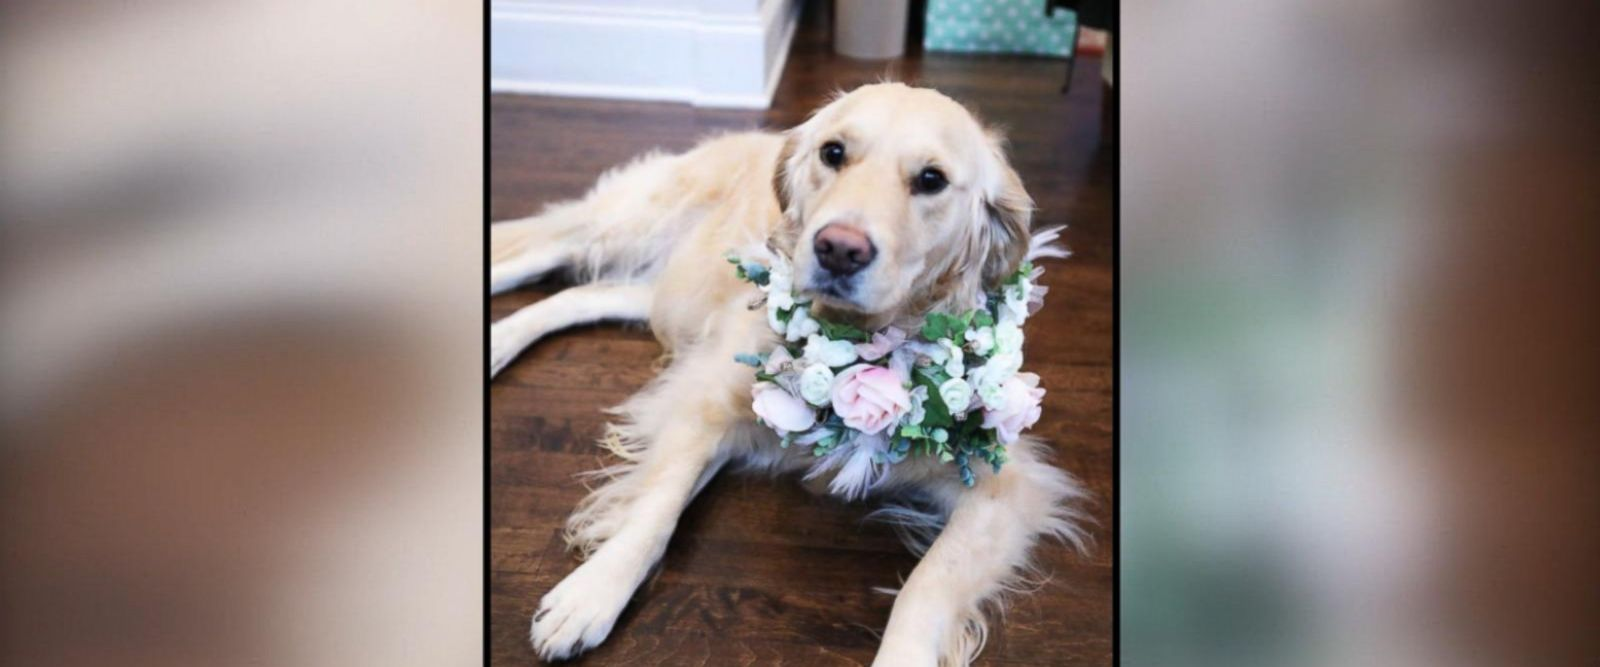 VIDEO: Bride uses her dog as flower girl: 'She's my little shadow'